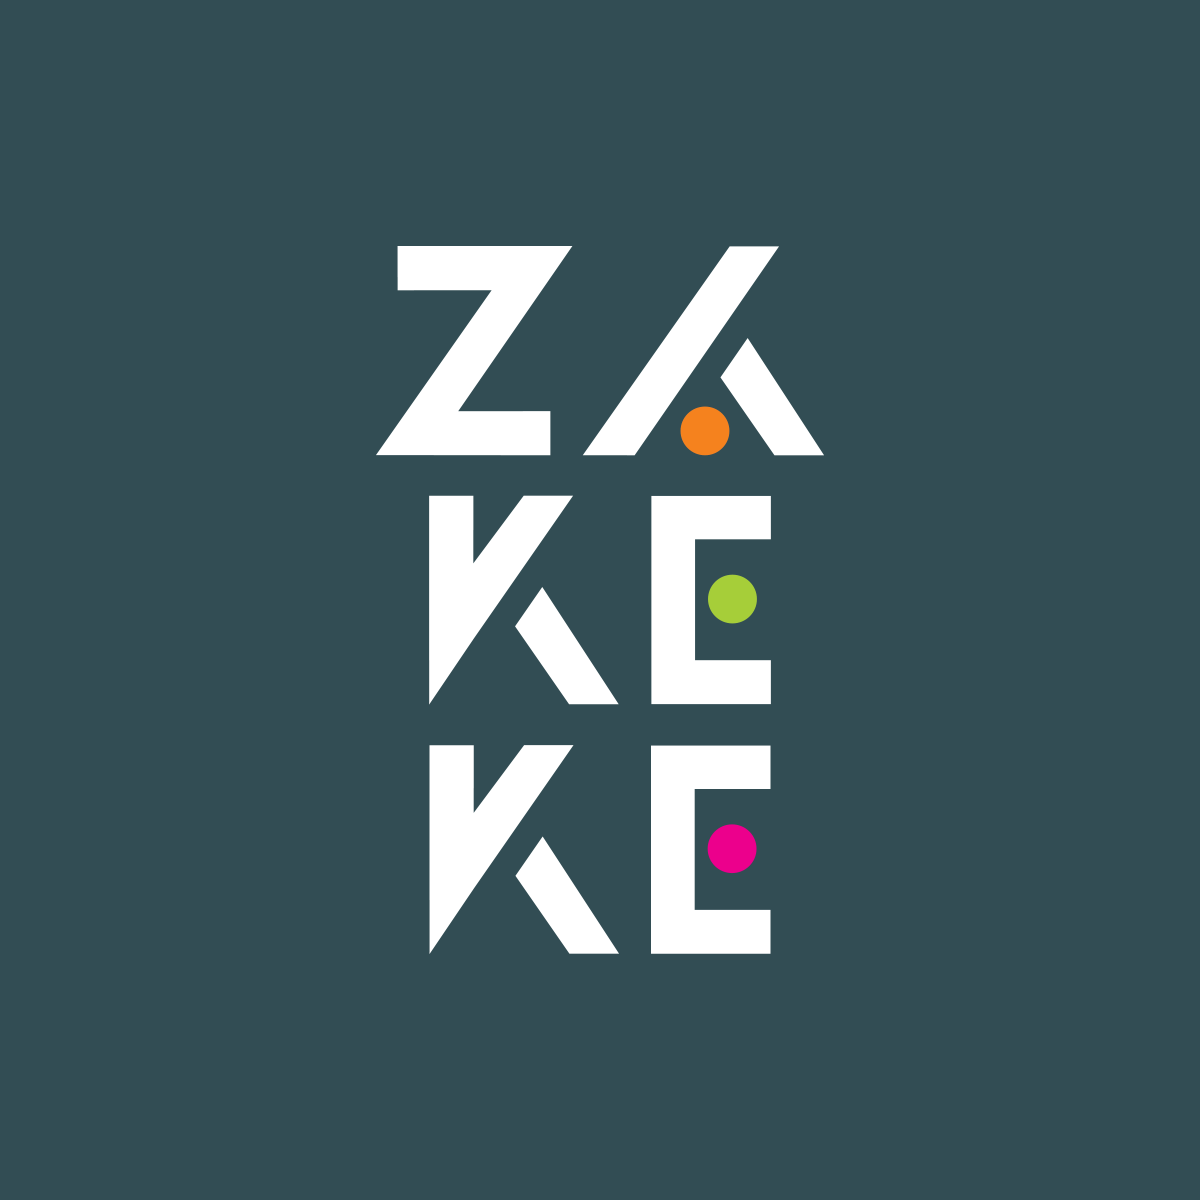 Zakeke Product Customizer